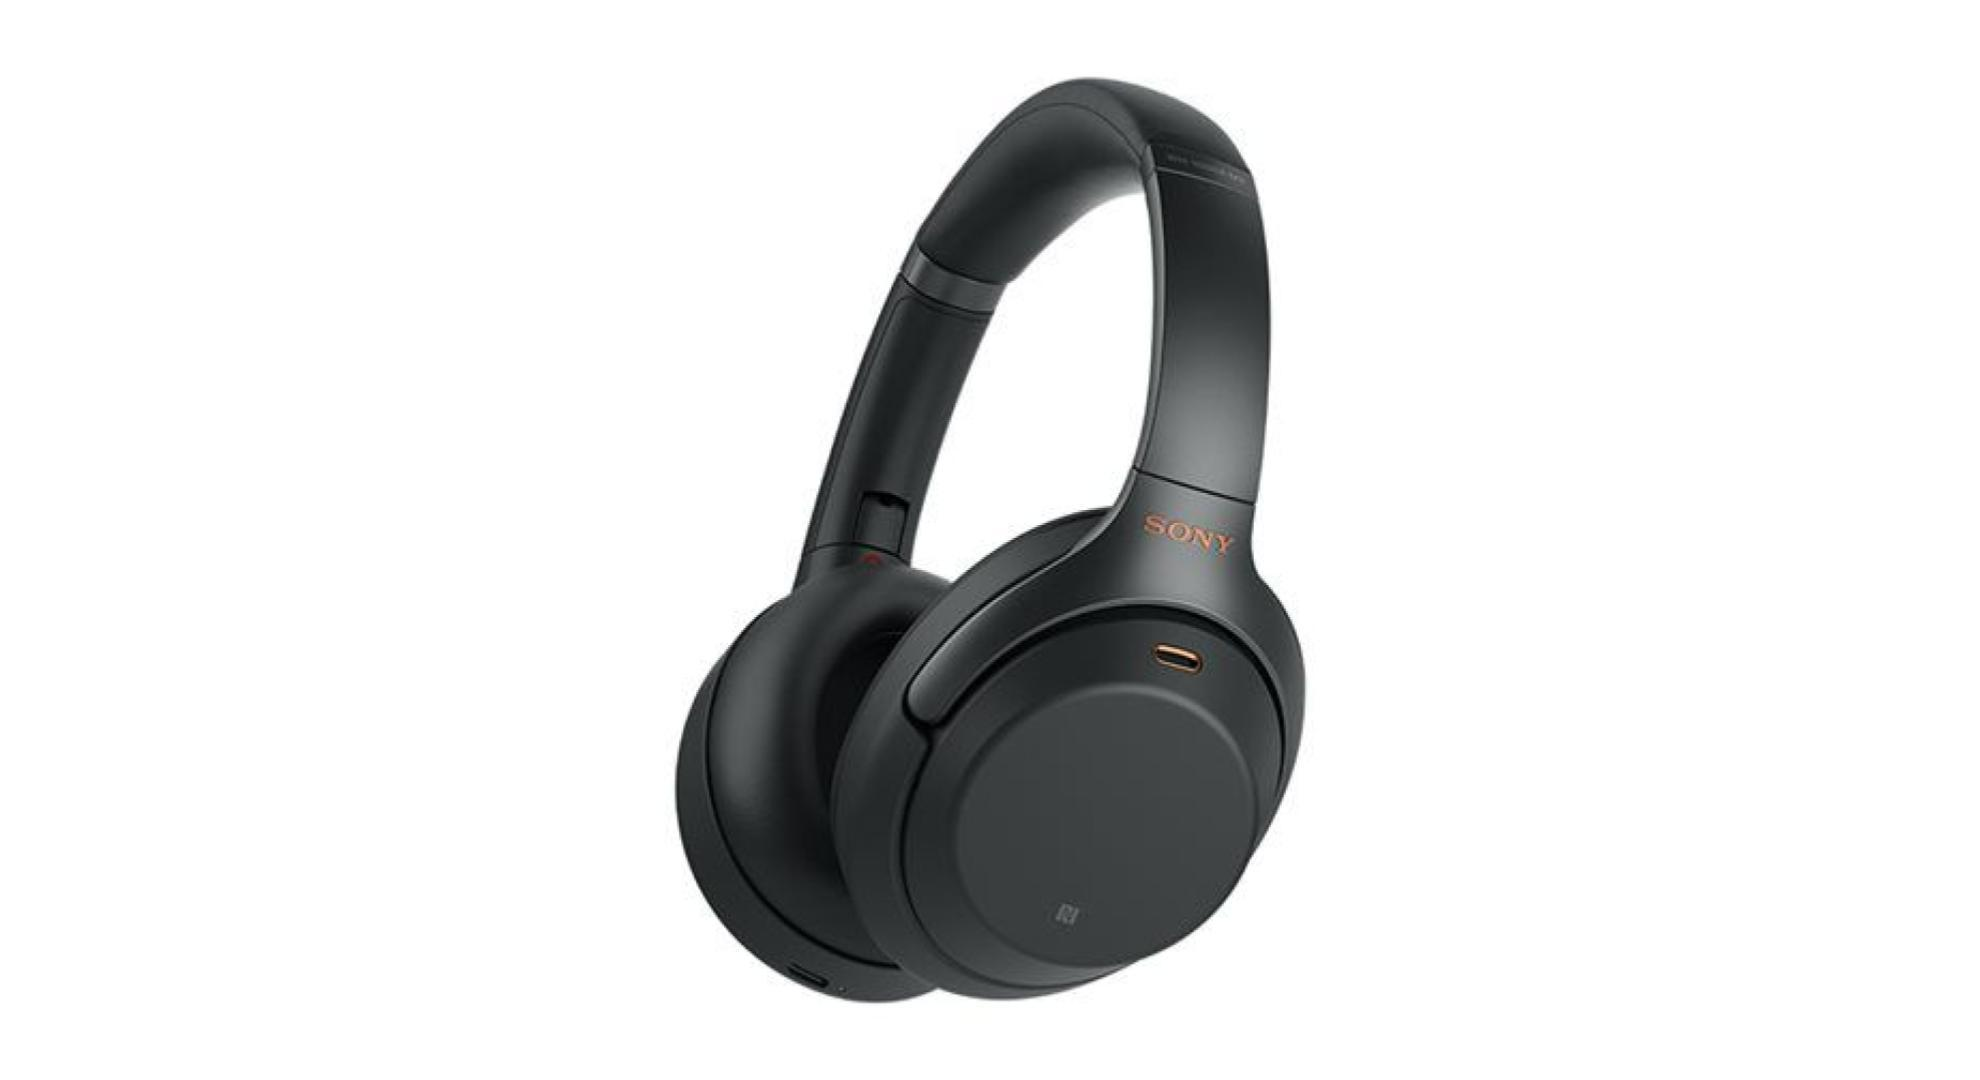 🔥 Bon plan : le casque Sony WH-1000XM3 descend à 335 euros sur Amazon